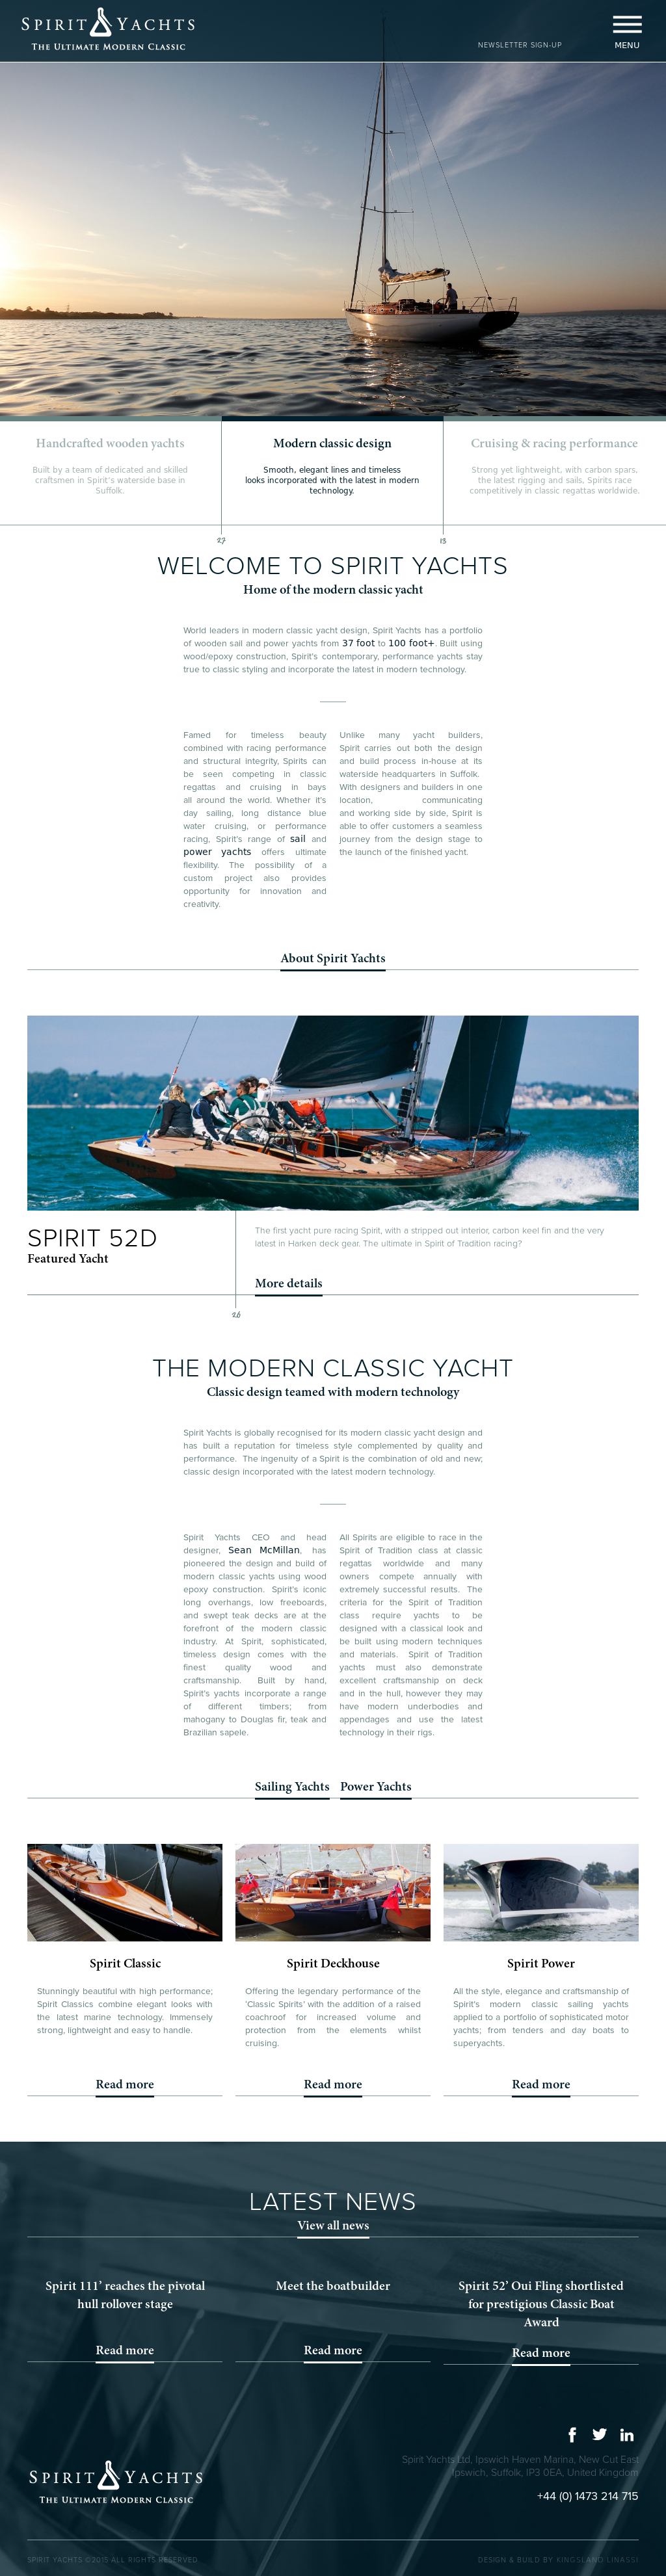 Spirit Yachts Competitors, Revenue and Employees - Owler